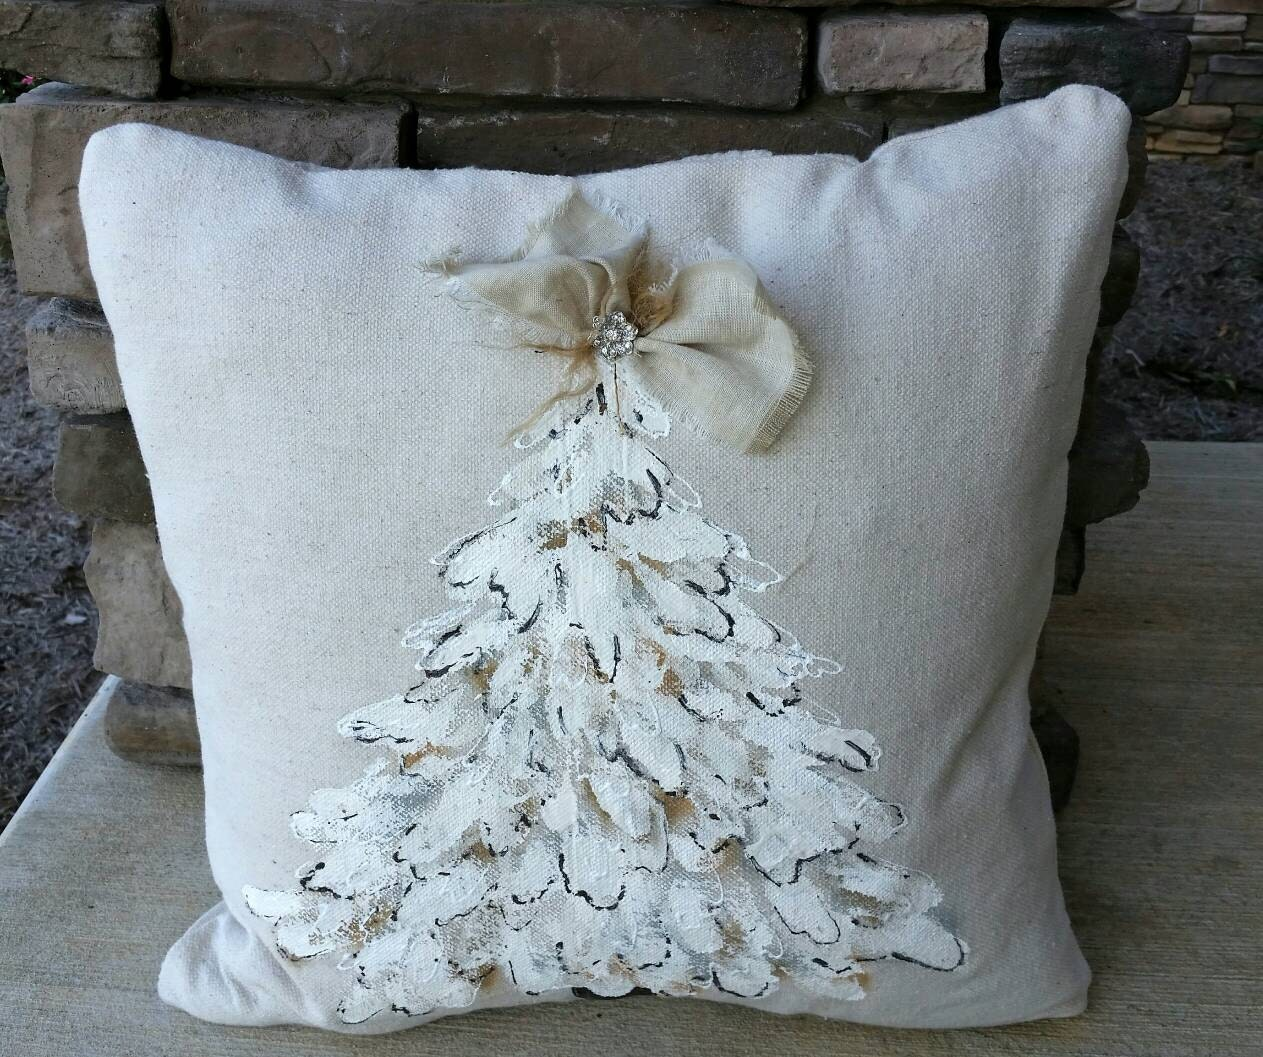 nursery home decor White Hand painted Pillow cover with small key and padlock by artist customized paint color cushion Farmhouse Cottage